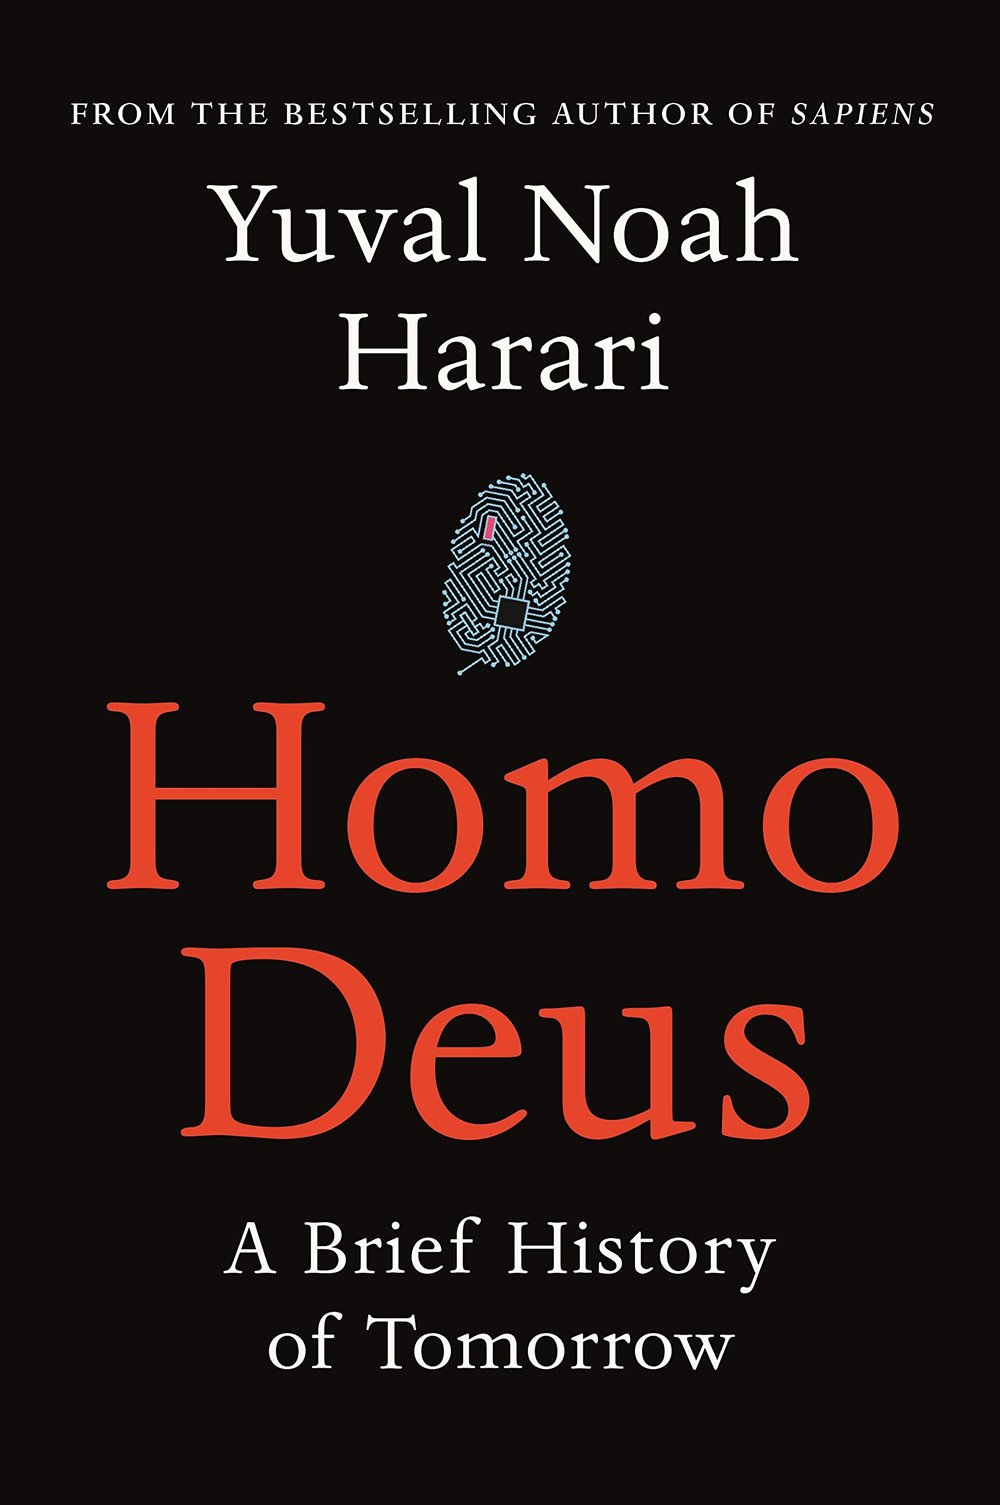 - If you want to explore what human beings may become read,Homo Deus by Yuval Noah HarariThis book helped me rediscover my love for learning. I believe everyone has heard about this book since it is a well-known bestseller. Every bookshop I walk into, it is happily sitting at the front ready to be taken. I was bombarded with so much information, questions and answers with this book, it really made me pause and think about life, science, knowledge and the world. How amazing human beings are, also how flawed and lethal we can be.Homo Deus translates into Human God. Harari explores the idea that humankind will be replaced with some type of Superman that will have unspeakable abilities like eternal life. We are the only species that have changed and shaped mankind. Harari is a specialist in world history, medieval history and military history. He contemplated possible futures we may stumble across and examines issues that trouble us like the pursuit of happiness. As supermen what will do next? How will we continue to shape the planet?